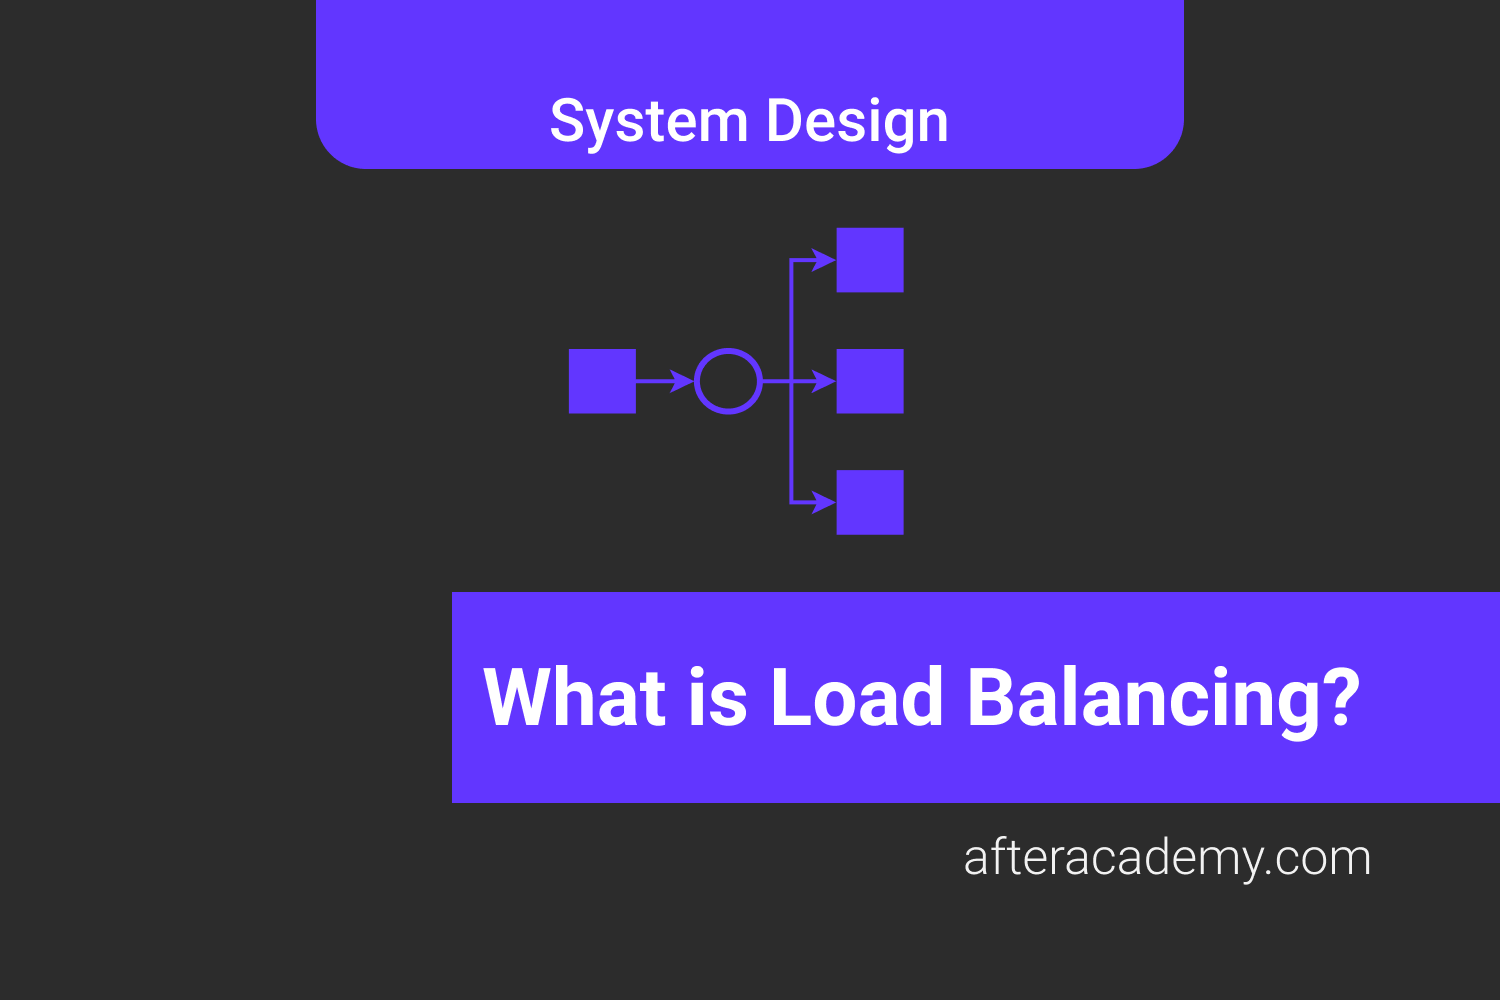 What is Load Balancing? How does it work?